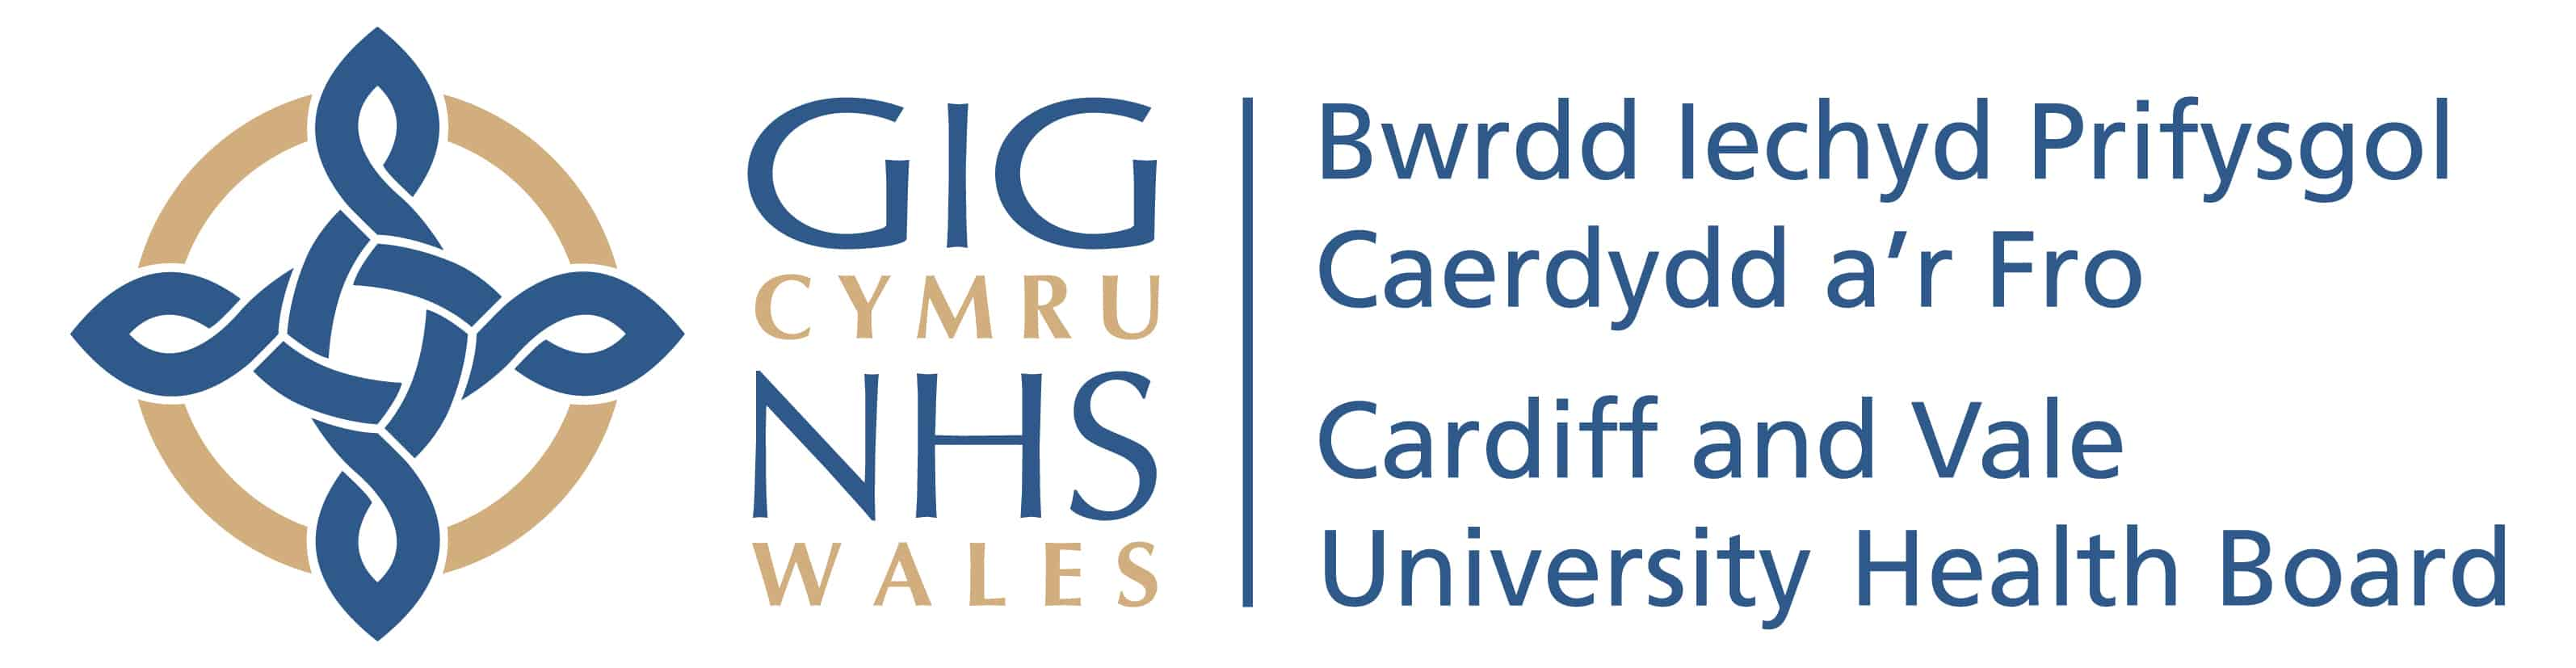 Developing a Patient-centred Service for Neuroendocrine Cancer across South Wales through Commissioning and Co-production